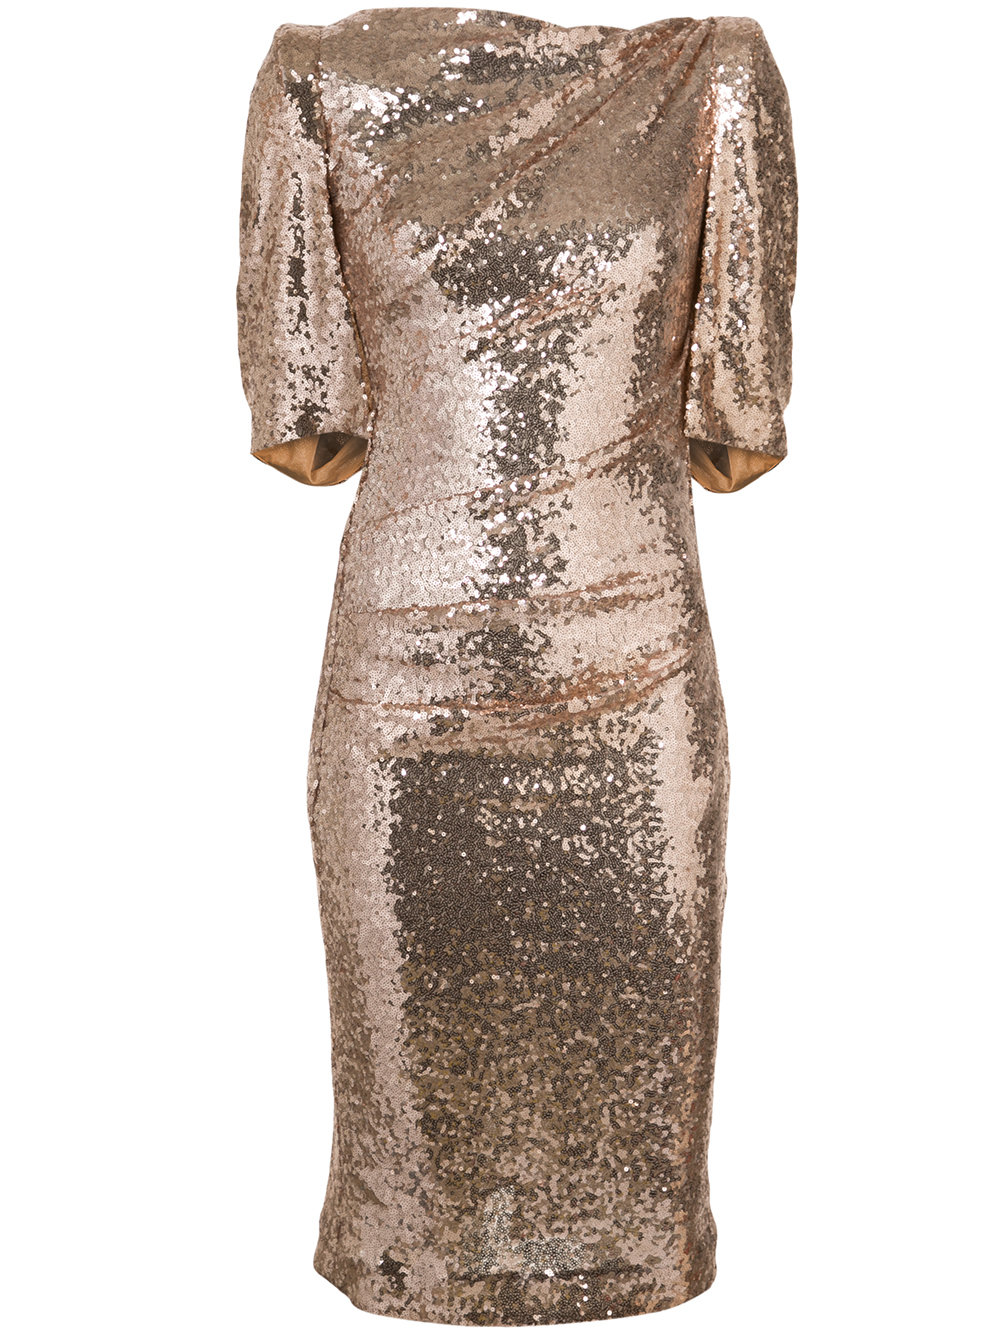 TALBOT RUNHOF dress - $1,895